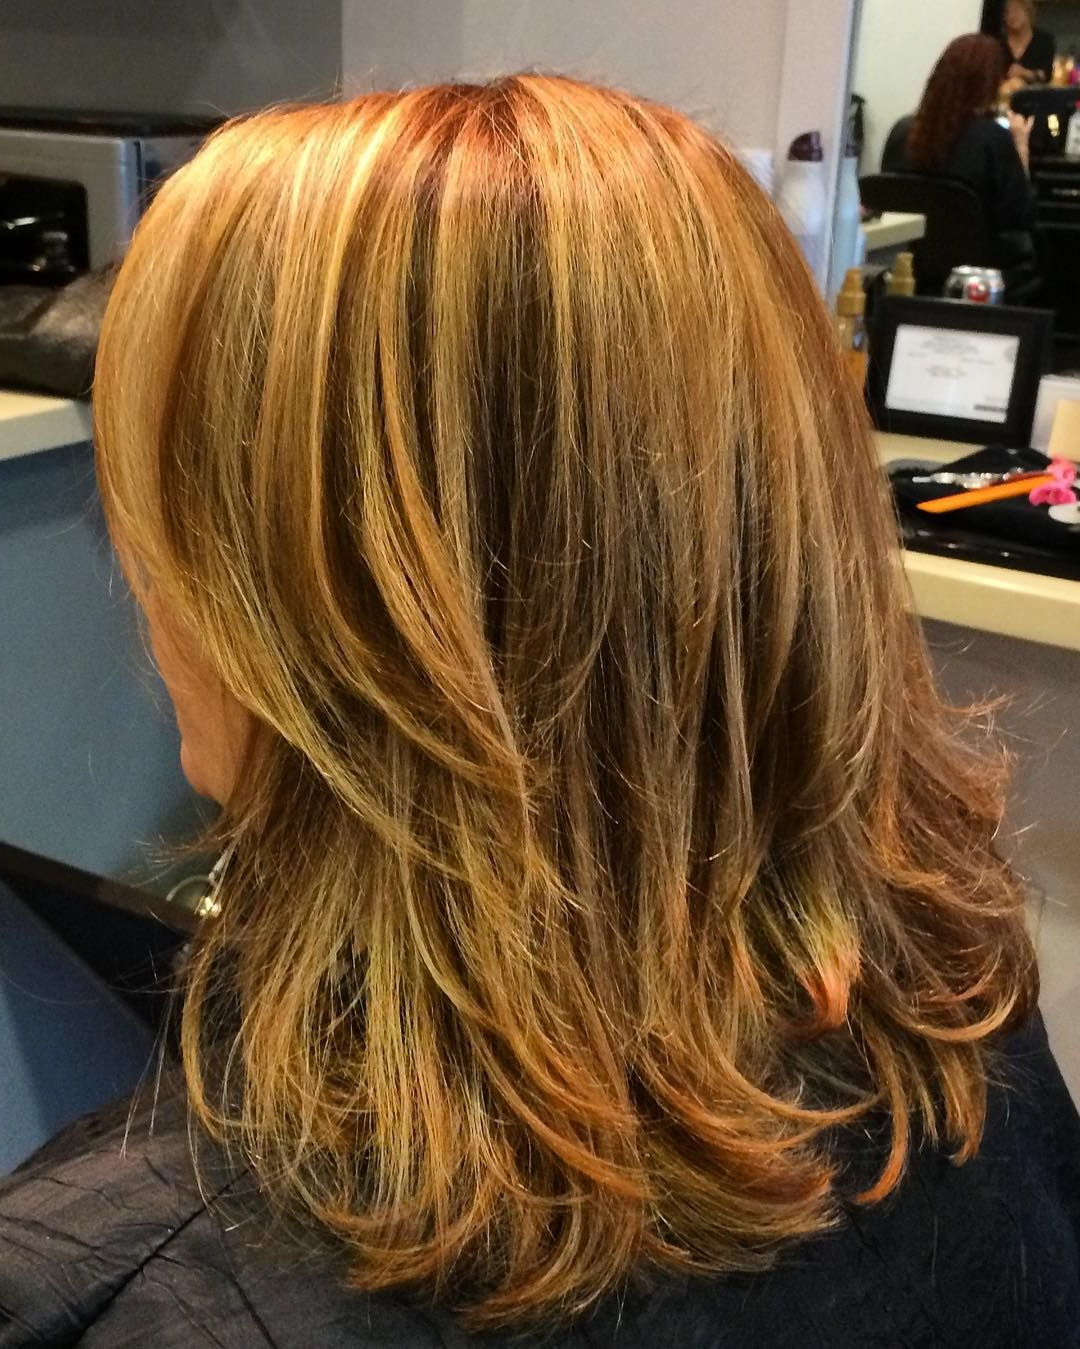 Straight Honey Blonde/caramel Brown Layered Hair (View 15 of 20)